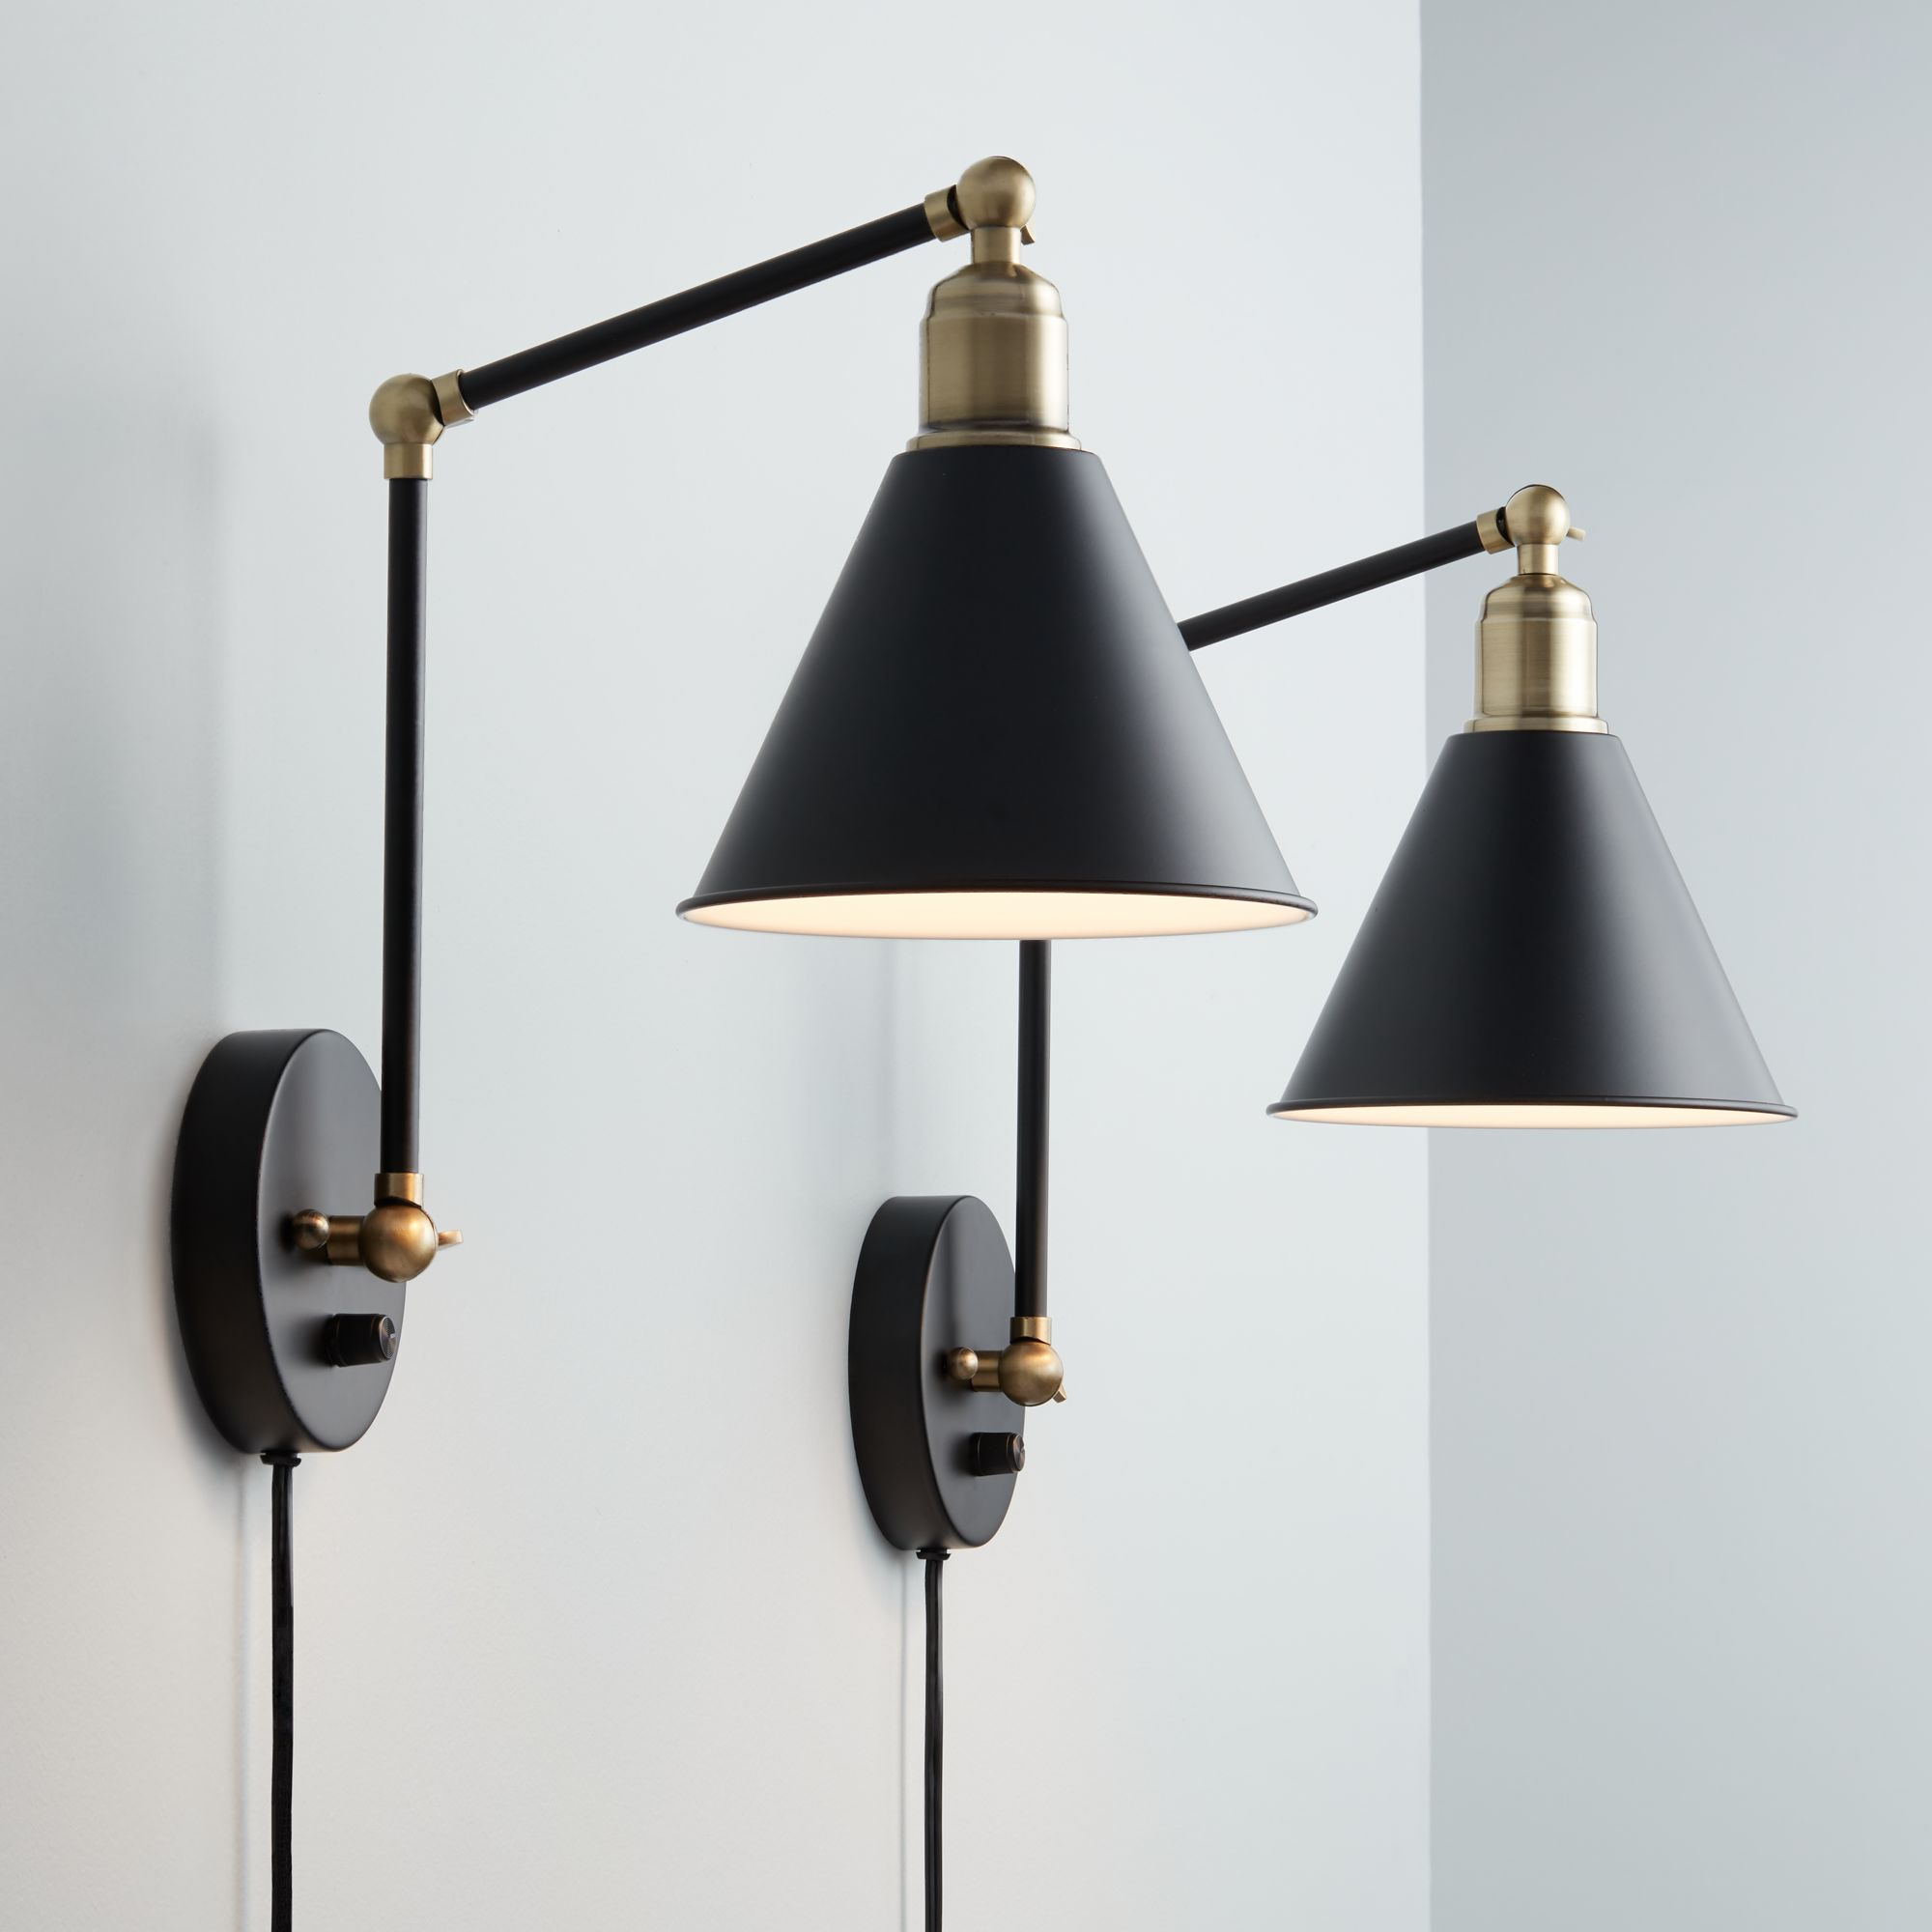 360 Lighting Modern Wall Lamp Plug In Set Of 2 Black And Antique Br For Bedroom Reading Living Room